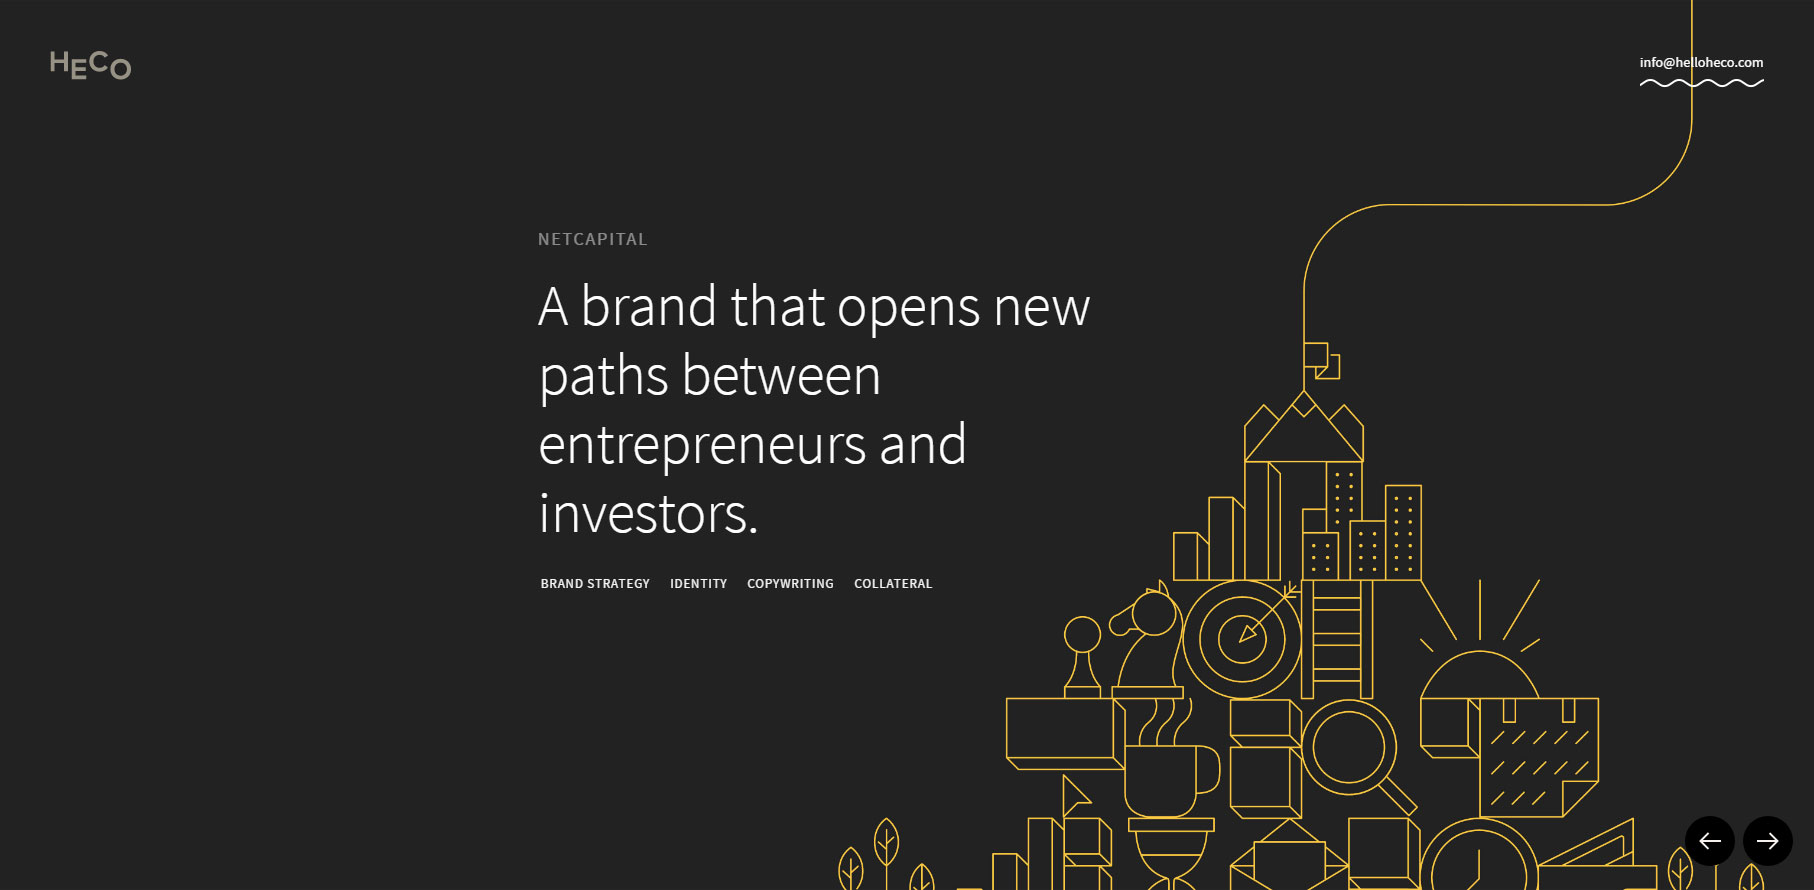 Heco Partners - Website of the Day